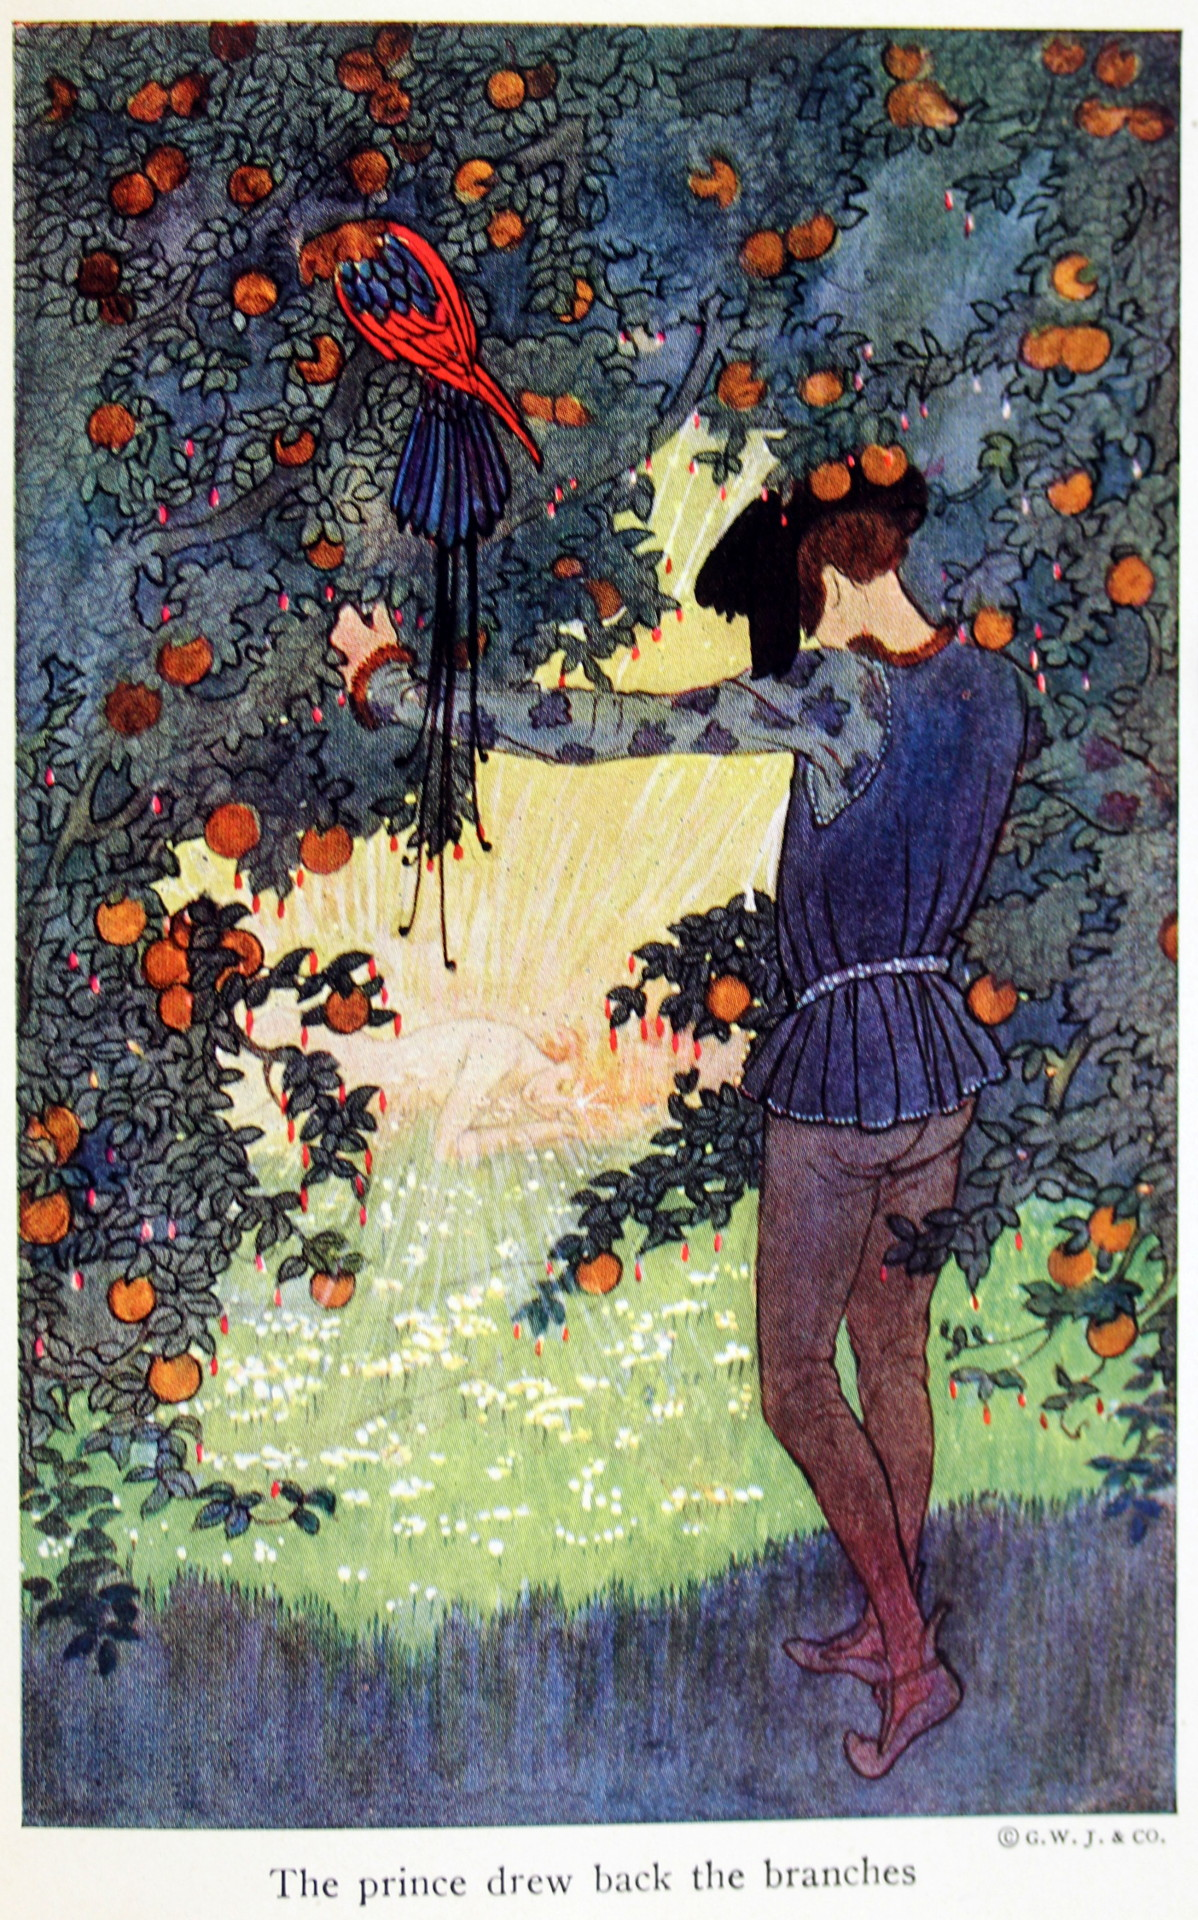 """4 Illustrations by Eleanor Plaisted Abbot, from """"The Flower Maiden _ Other Stories"""" by Hans Christian Anderson (1922)."""